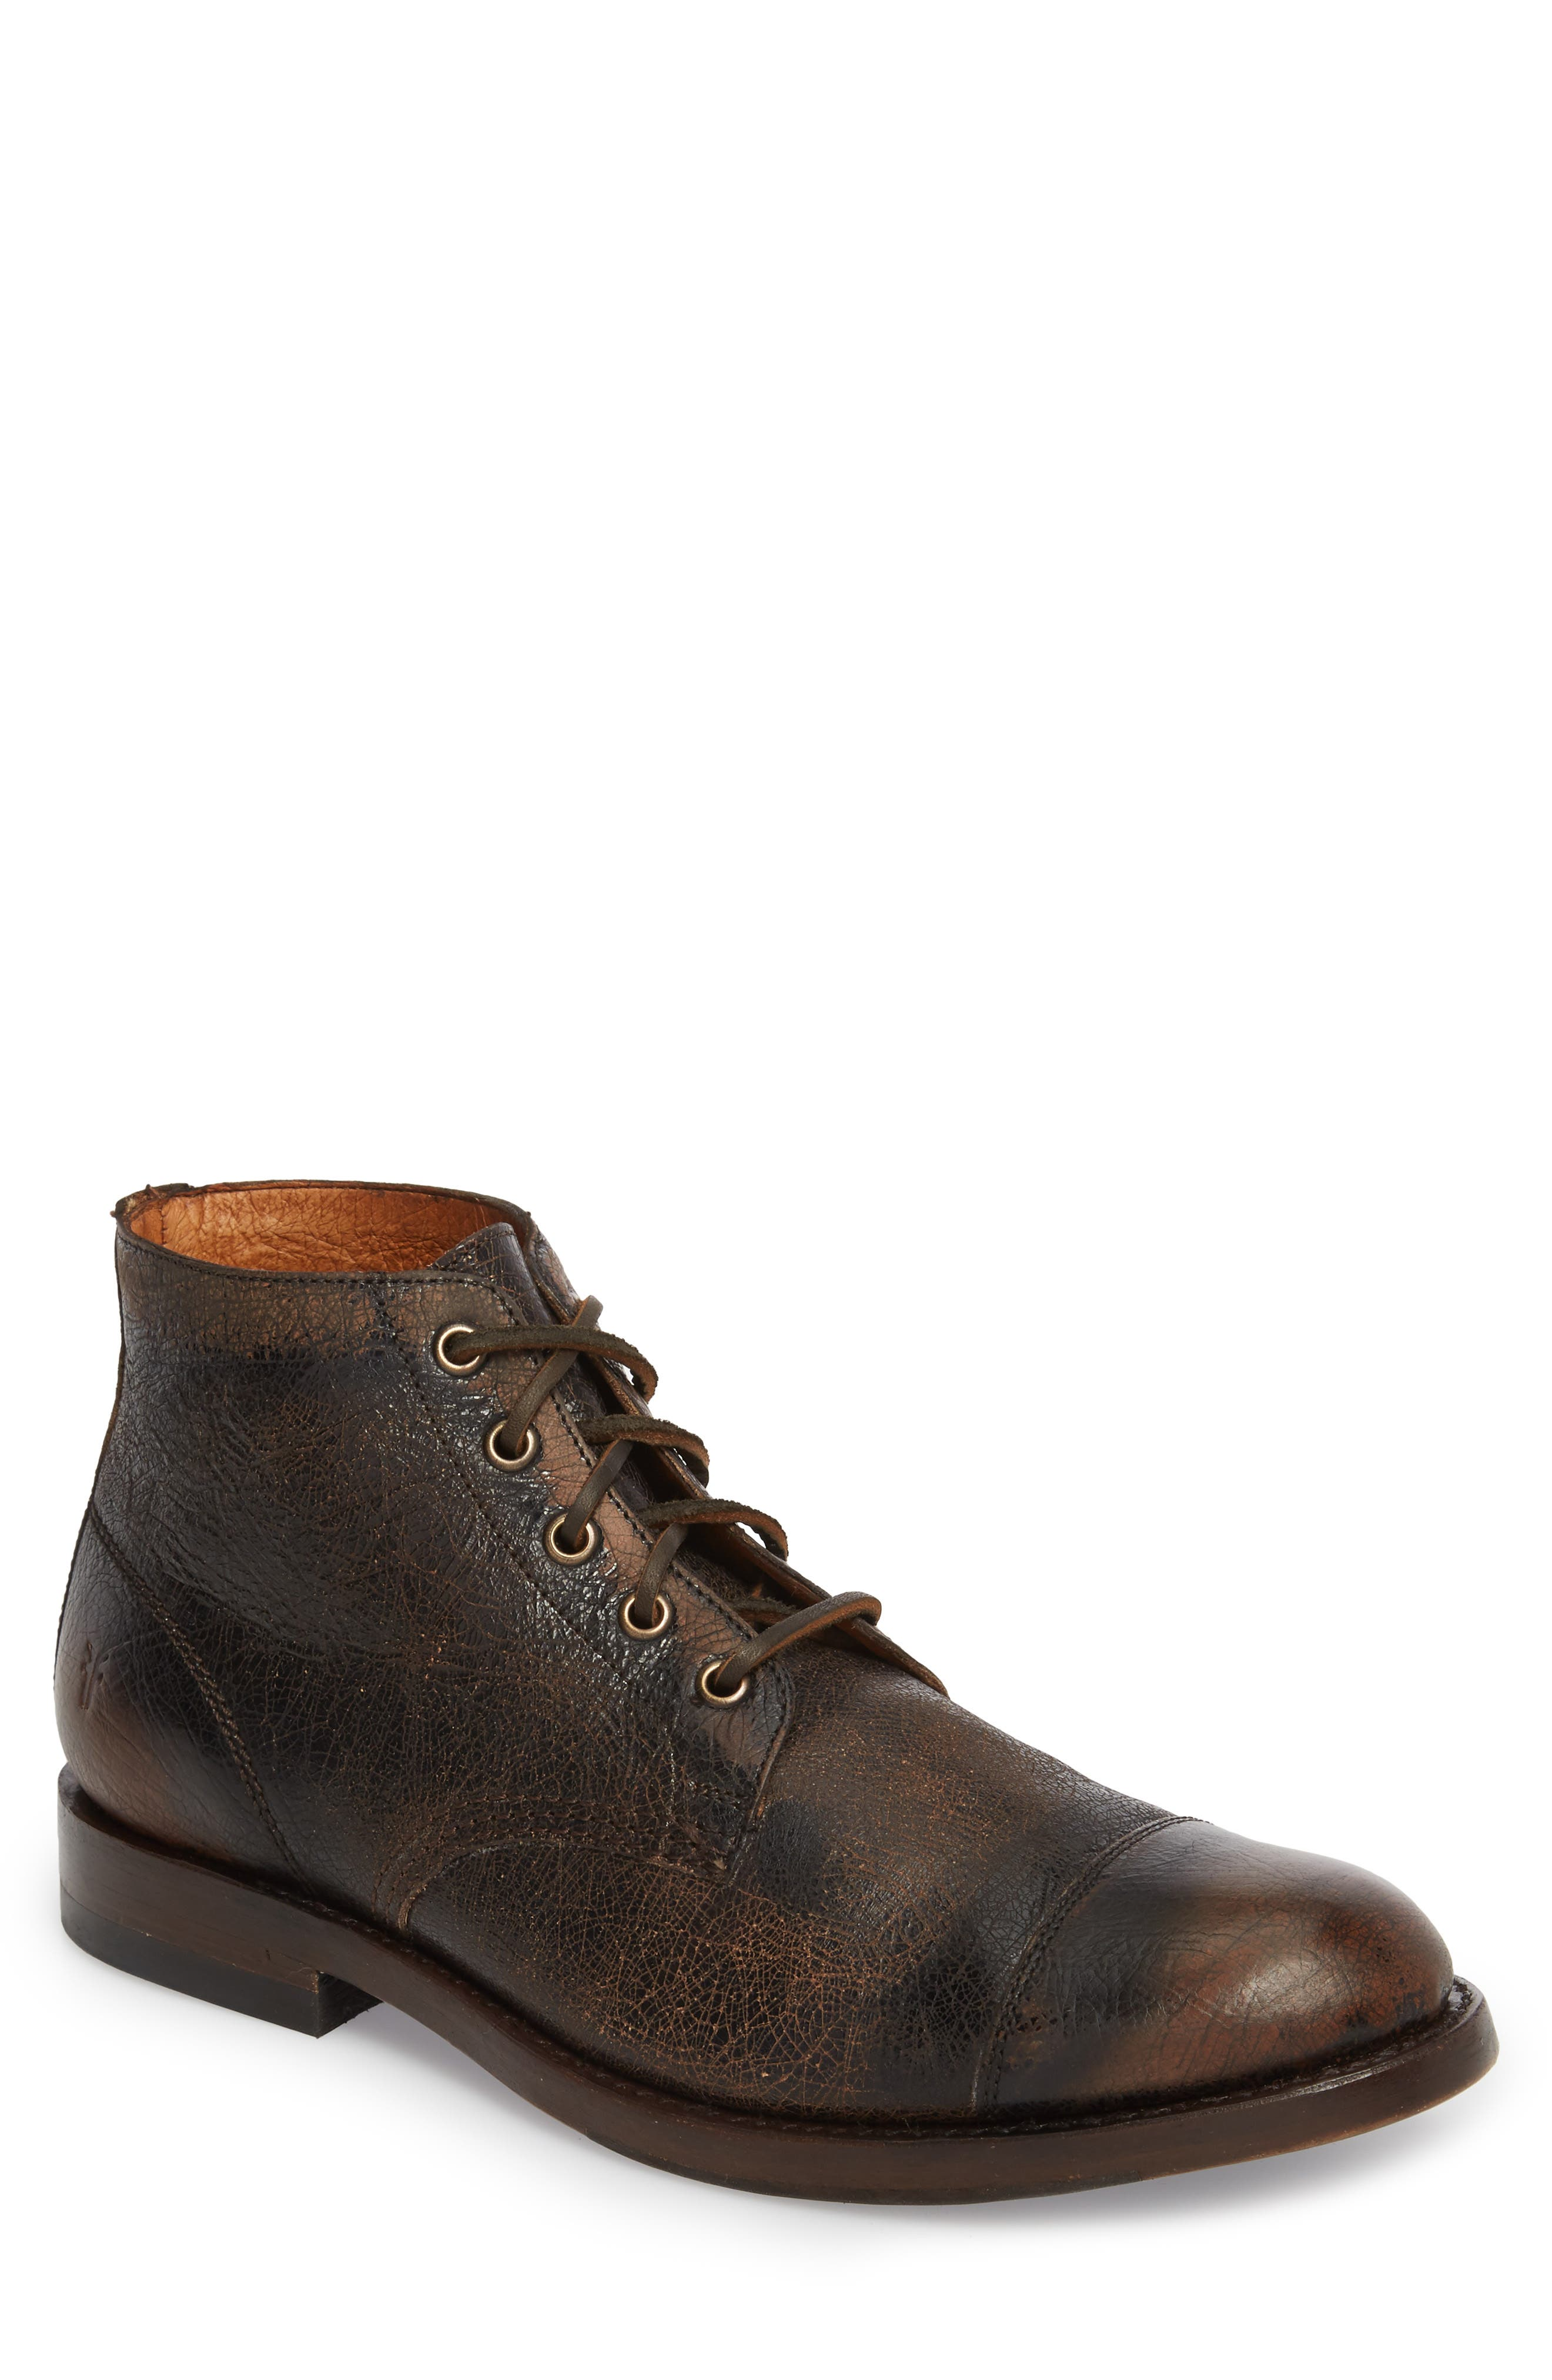 Will Chukka Boot,                             Main thumbnail 1, color,                             DARK BROWN LEATHER